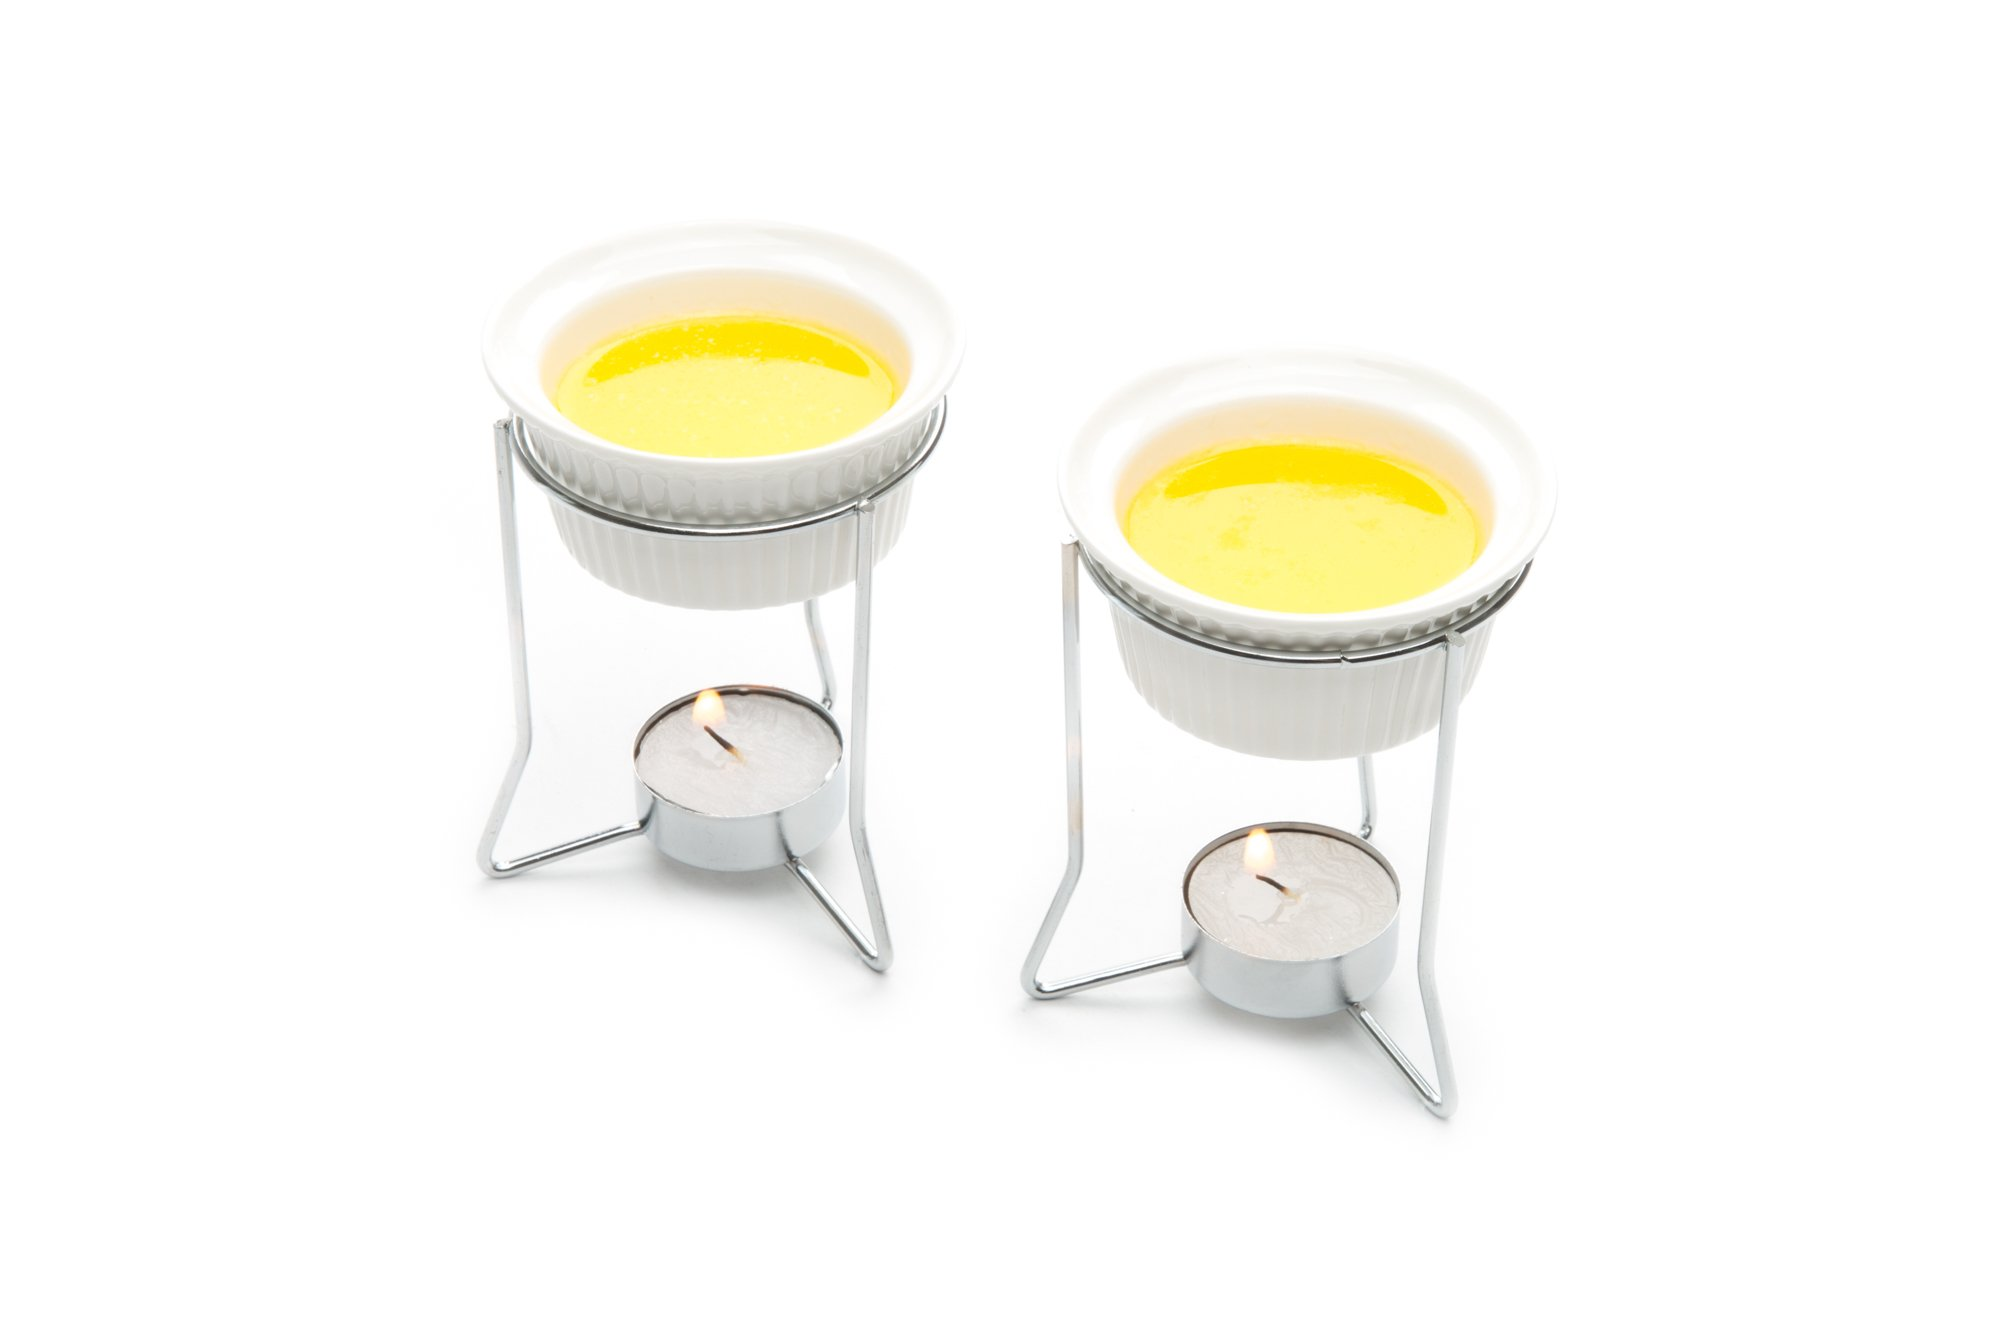 Nantucket Seafood 5590 Butter Warmers, Set of 2